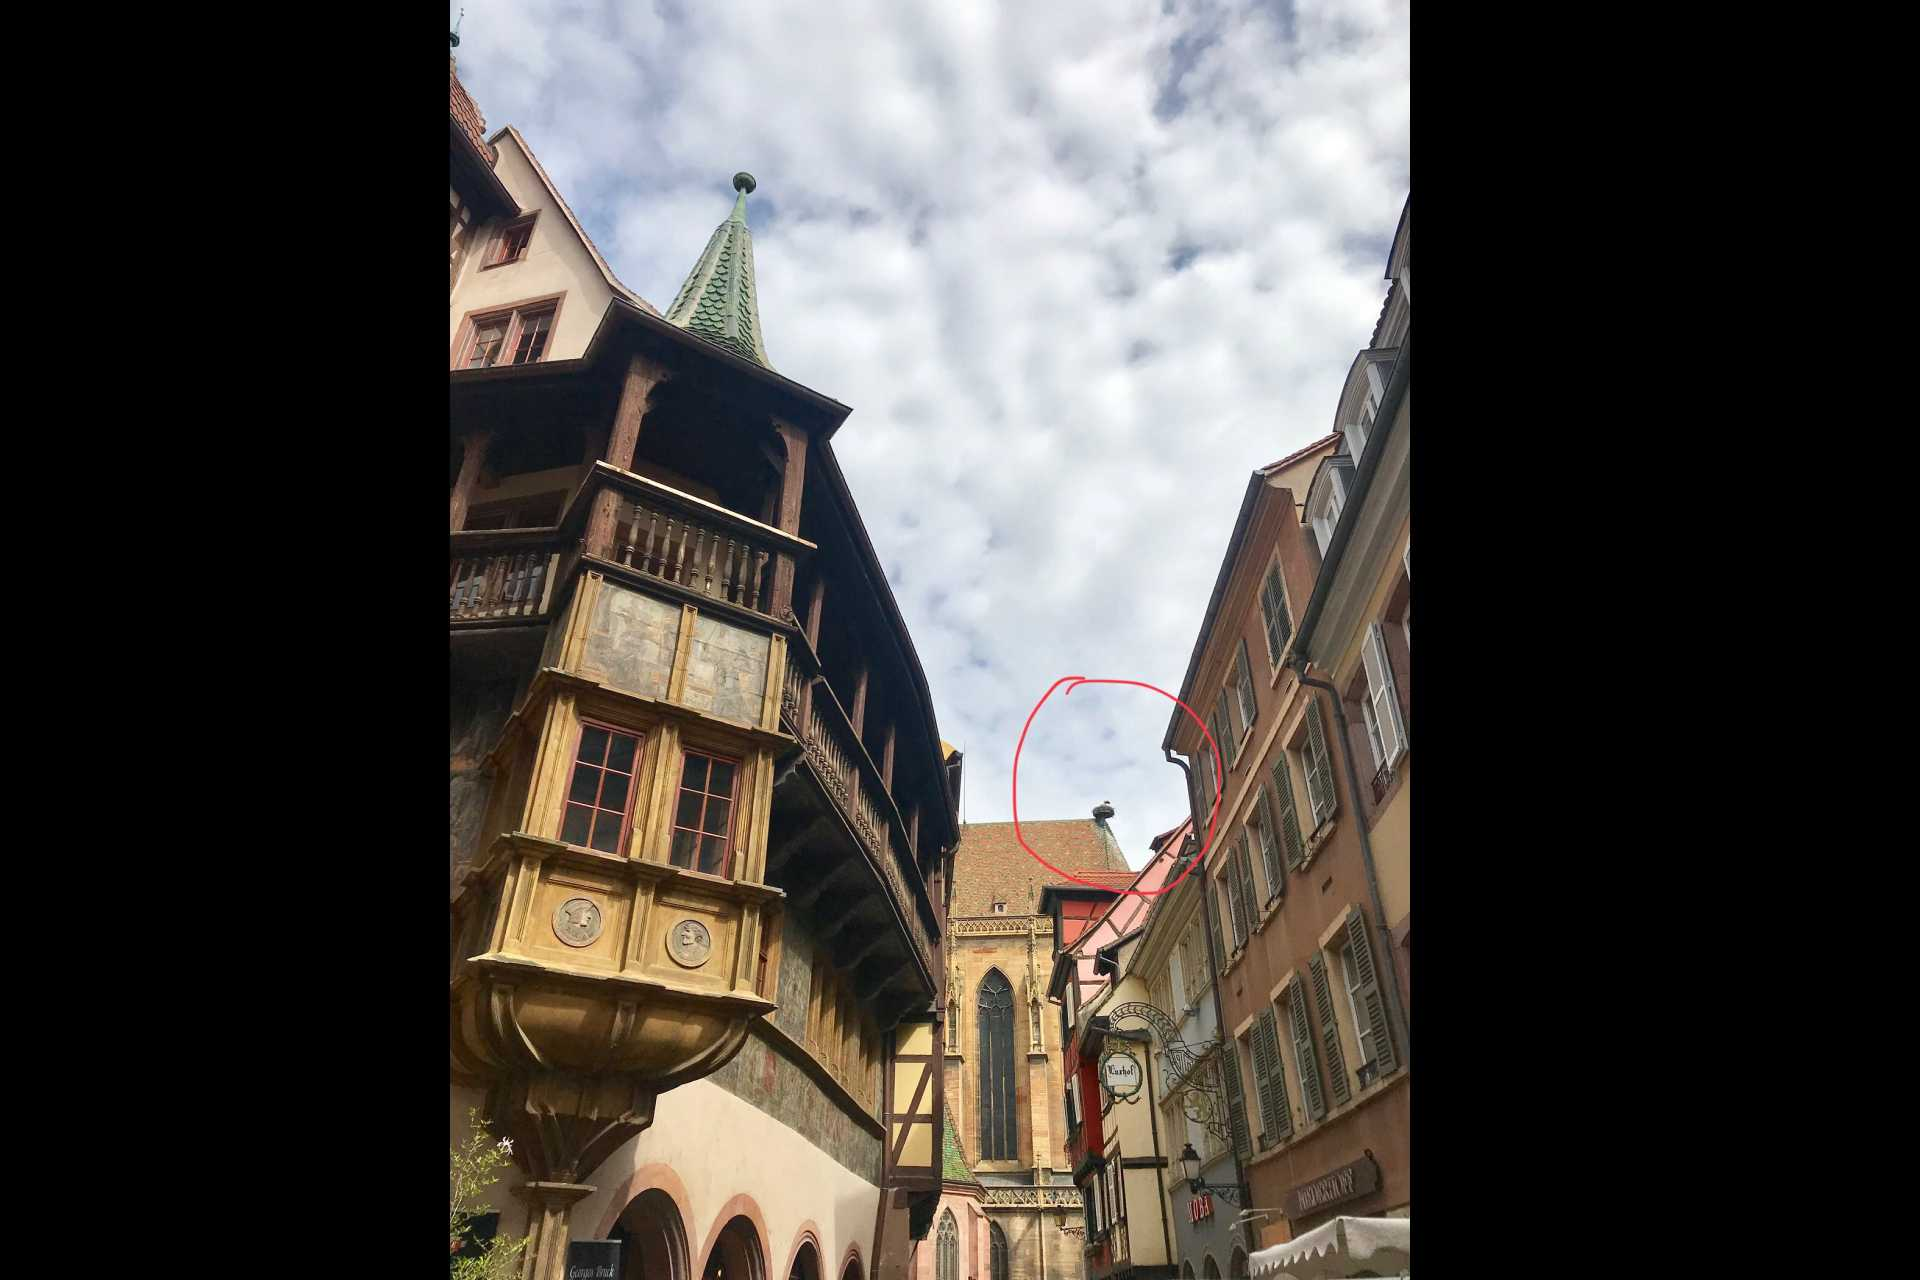 16th century richly decorated Merchat's house - Maison Pfister on the right, look up towards St Martin and you will see Mr and Mrs Martin & Martine Stork's nest(named after the church where they chose to build their nest)